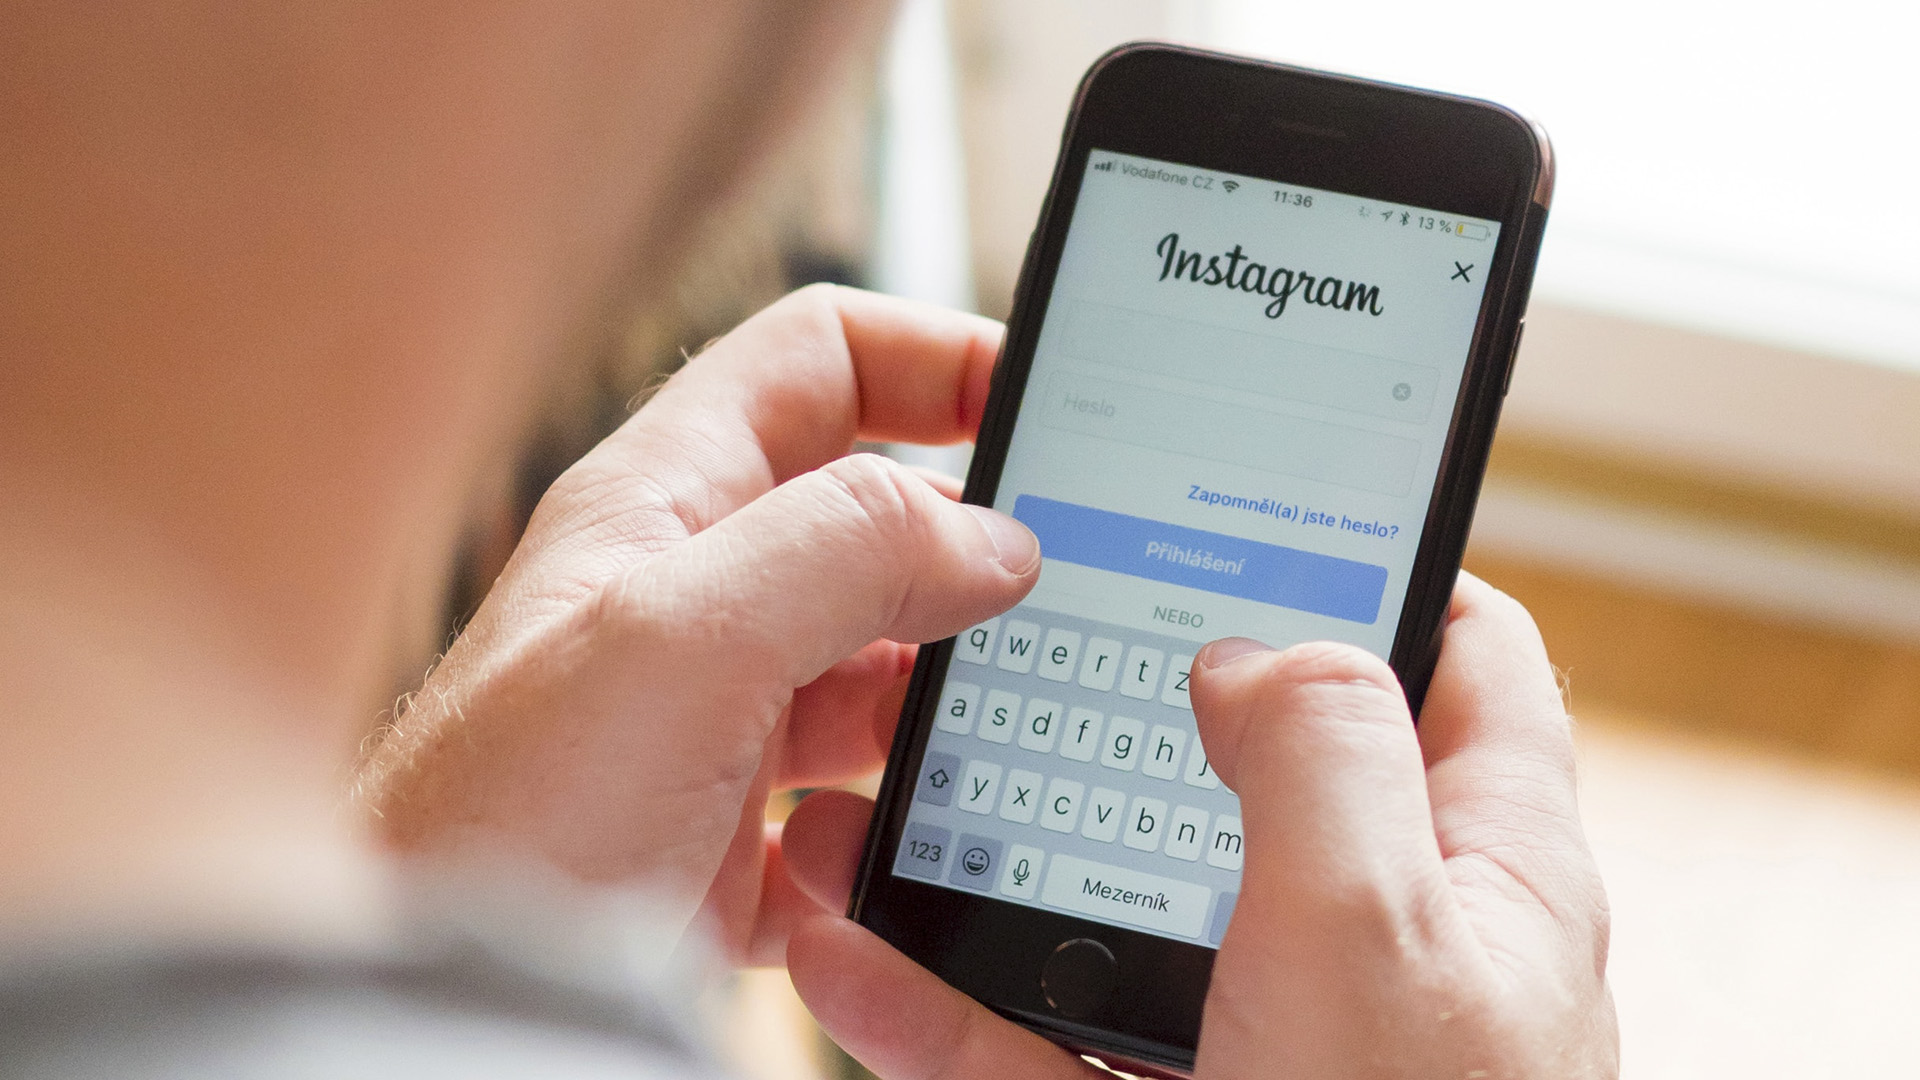 Users Complain Of Censorship Due To Instagram's New Sensitivity Filter